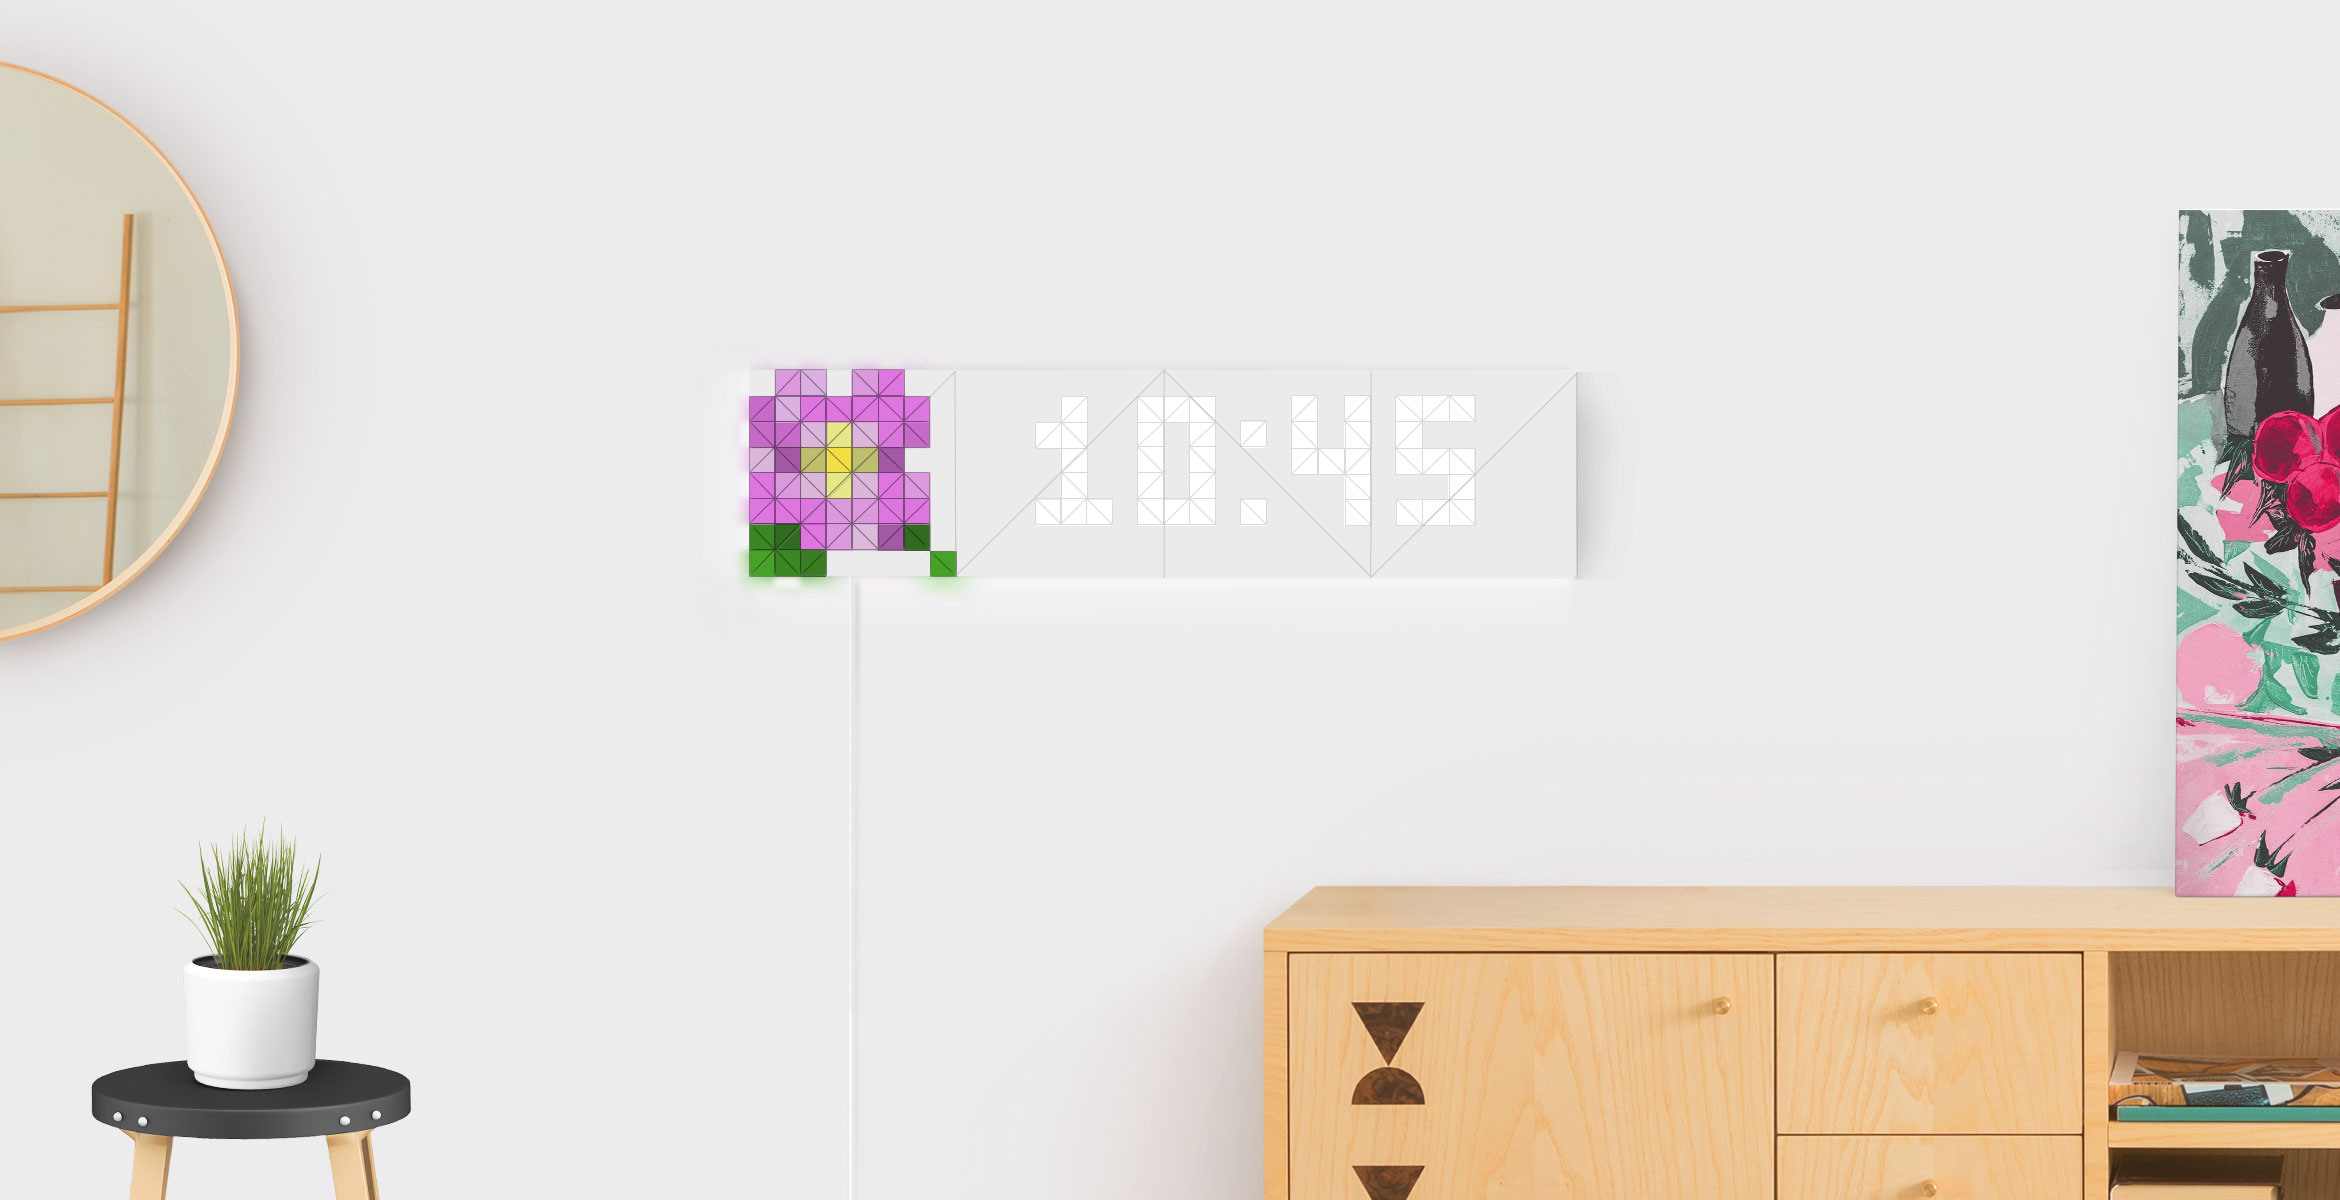 Infoscreen shape, assembled from 16 LaMetric SKY smart light surfaces, displays time and flower Sky face